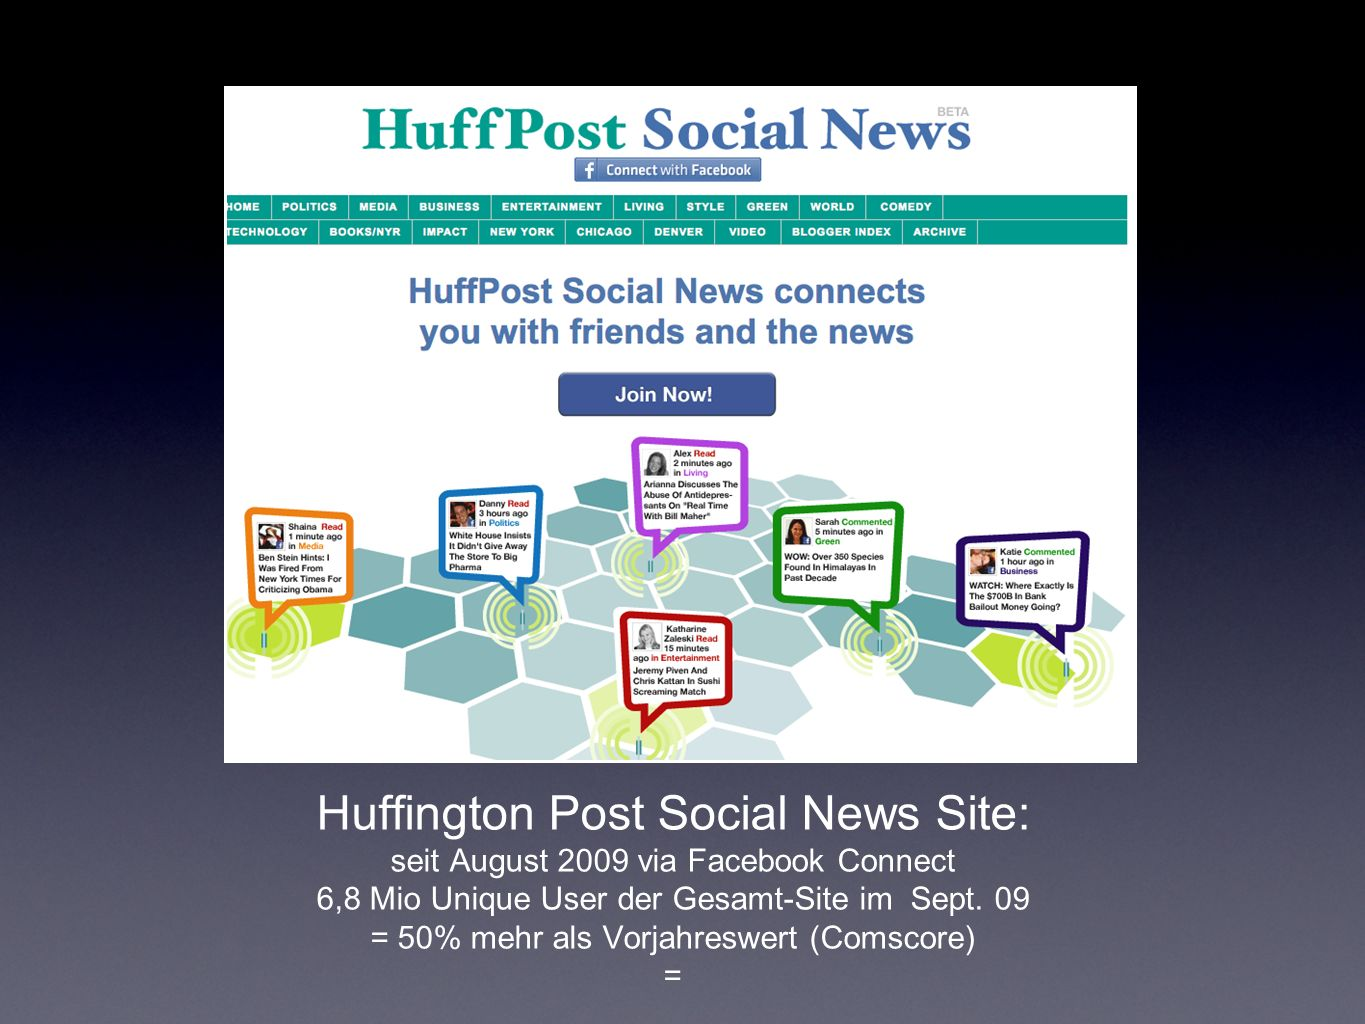 Huffington Post Social News Site: seit August 2009 via Facebook Connect 6,8 Mio Unique User der Gesamt-Site im Sept. 09 = 50% mehr als Vorjahreswert (